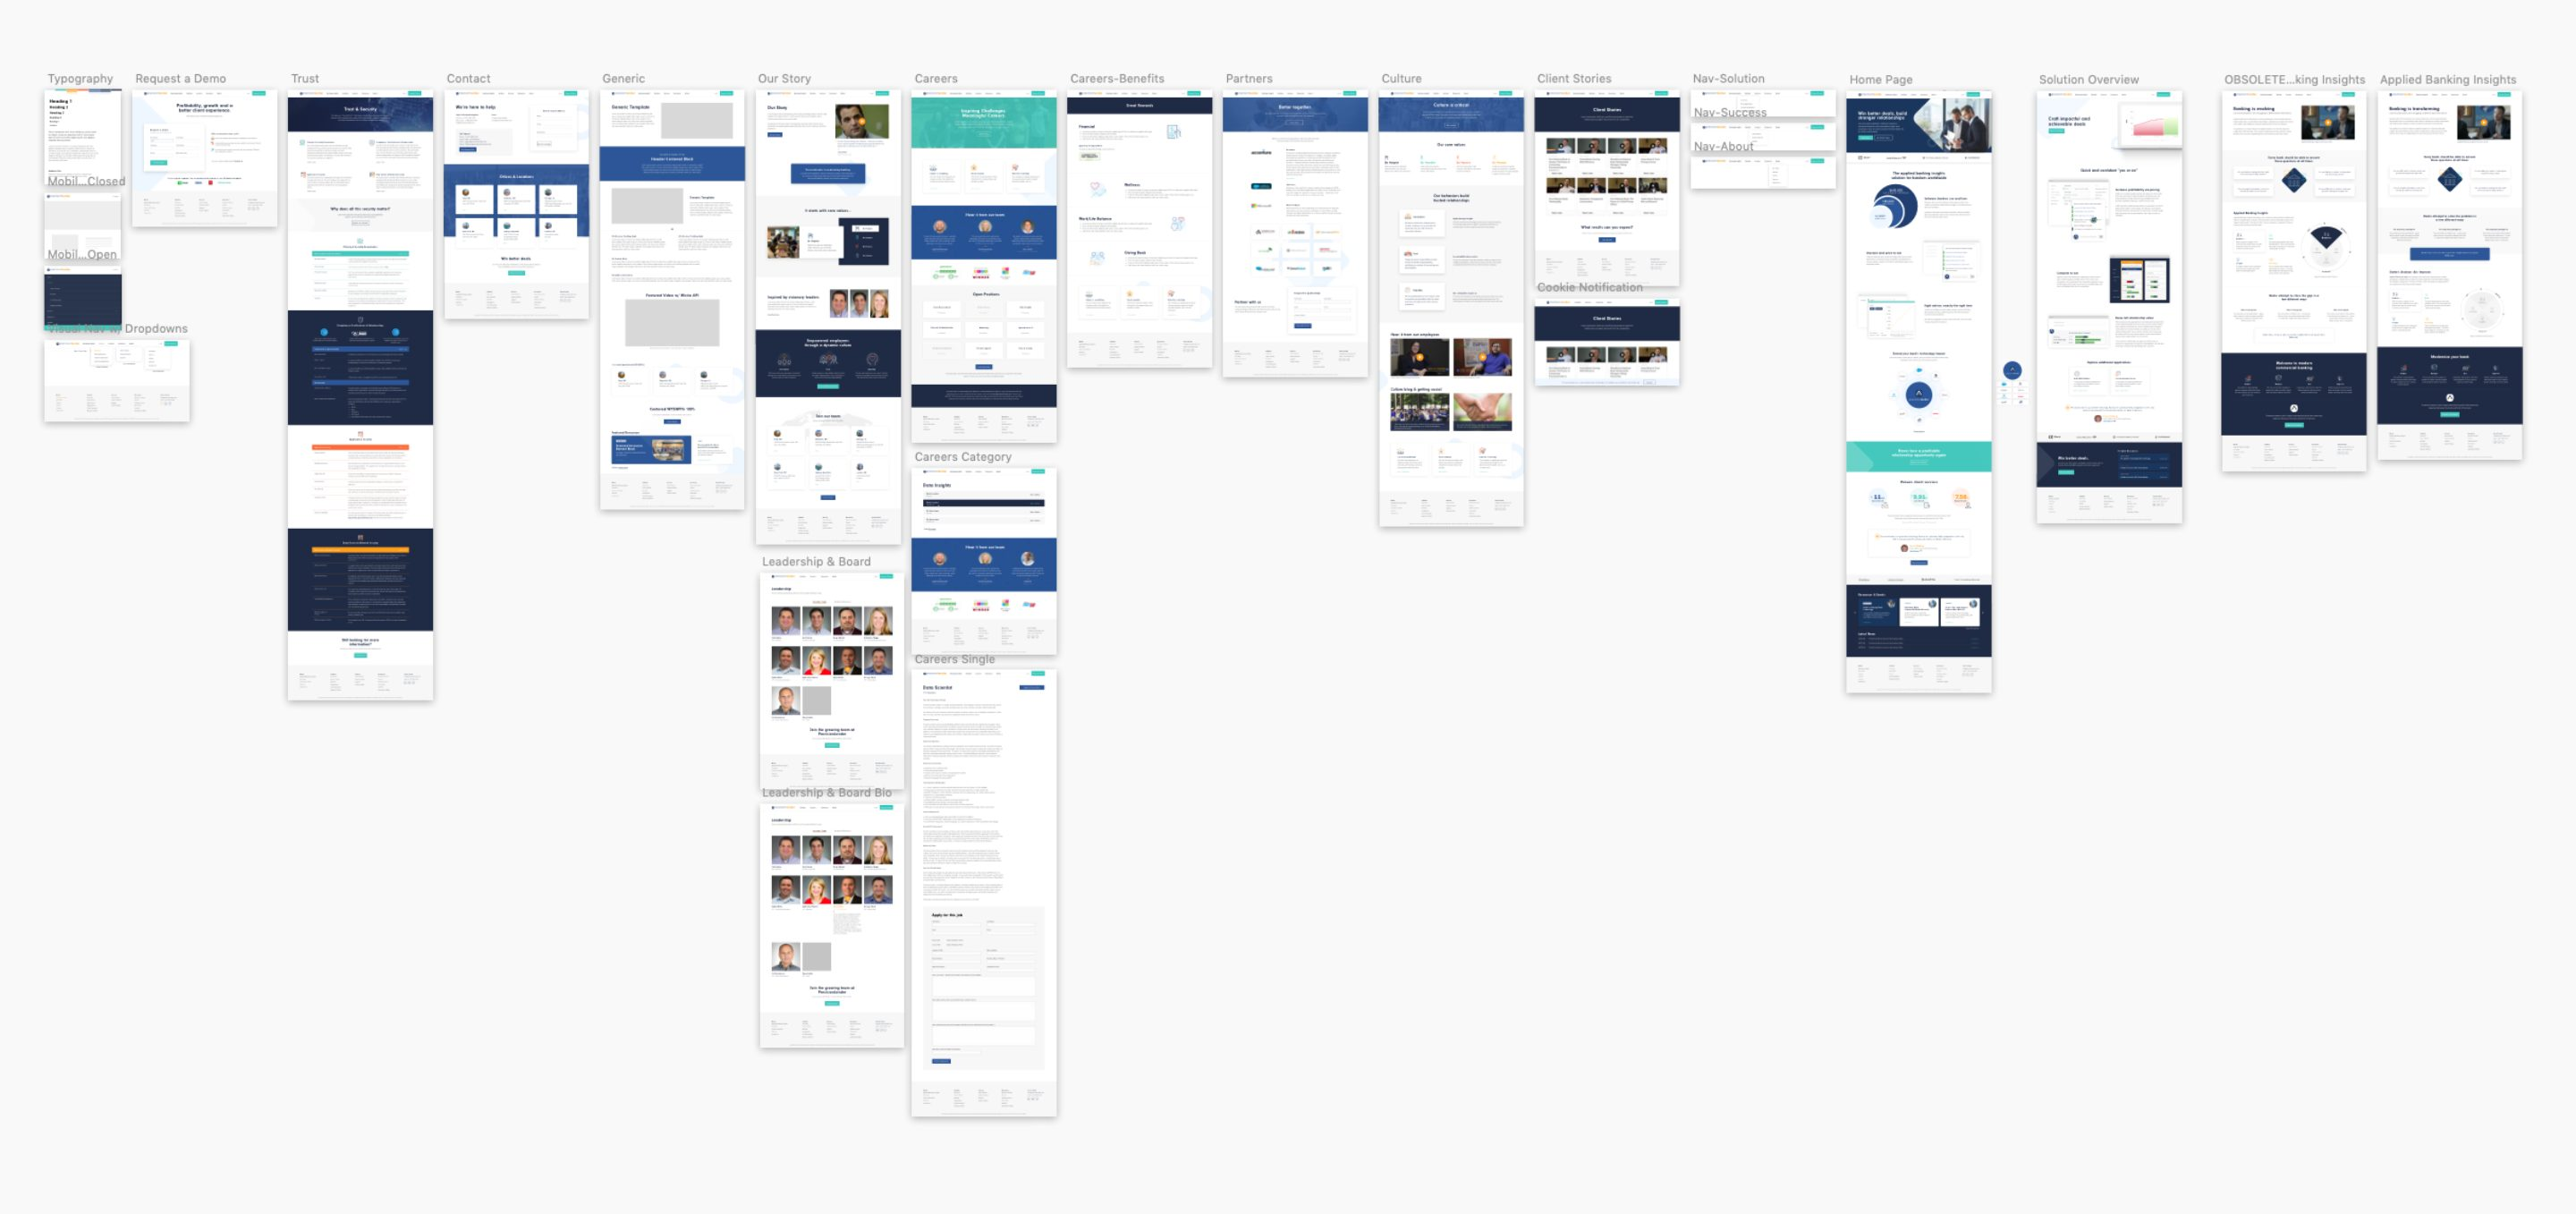 Sketch file containing all templates